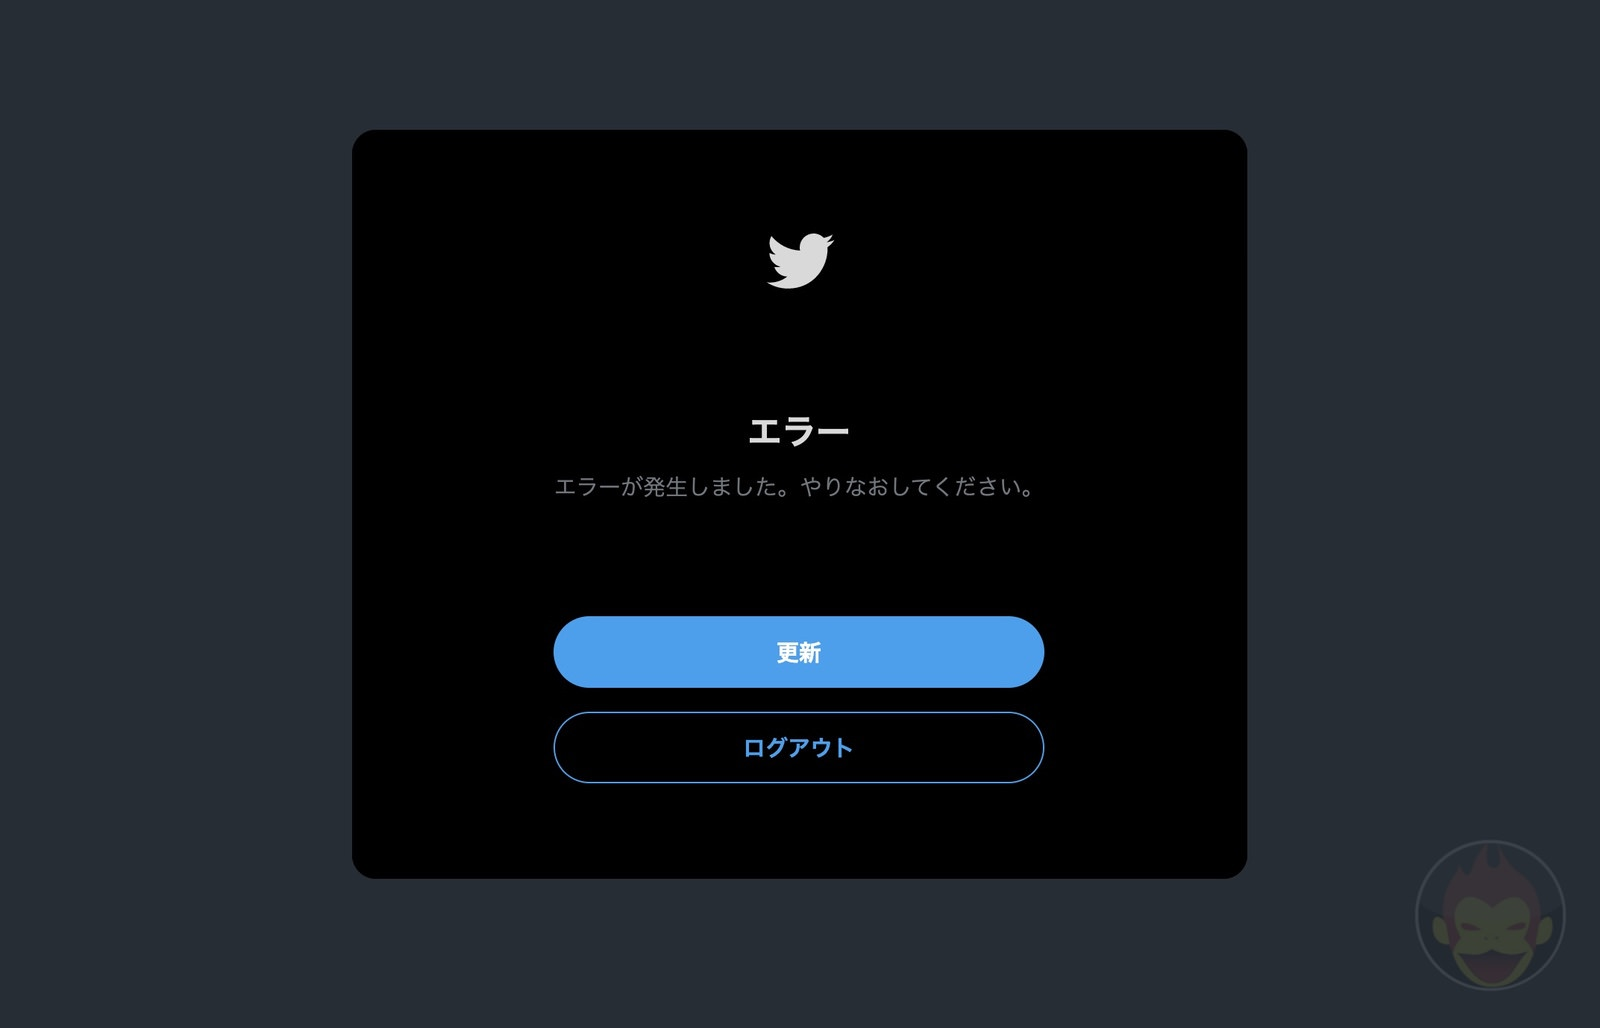 Twitter is down and having trouble 01